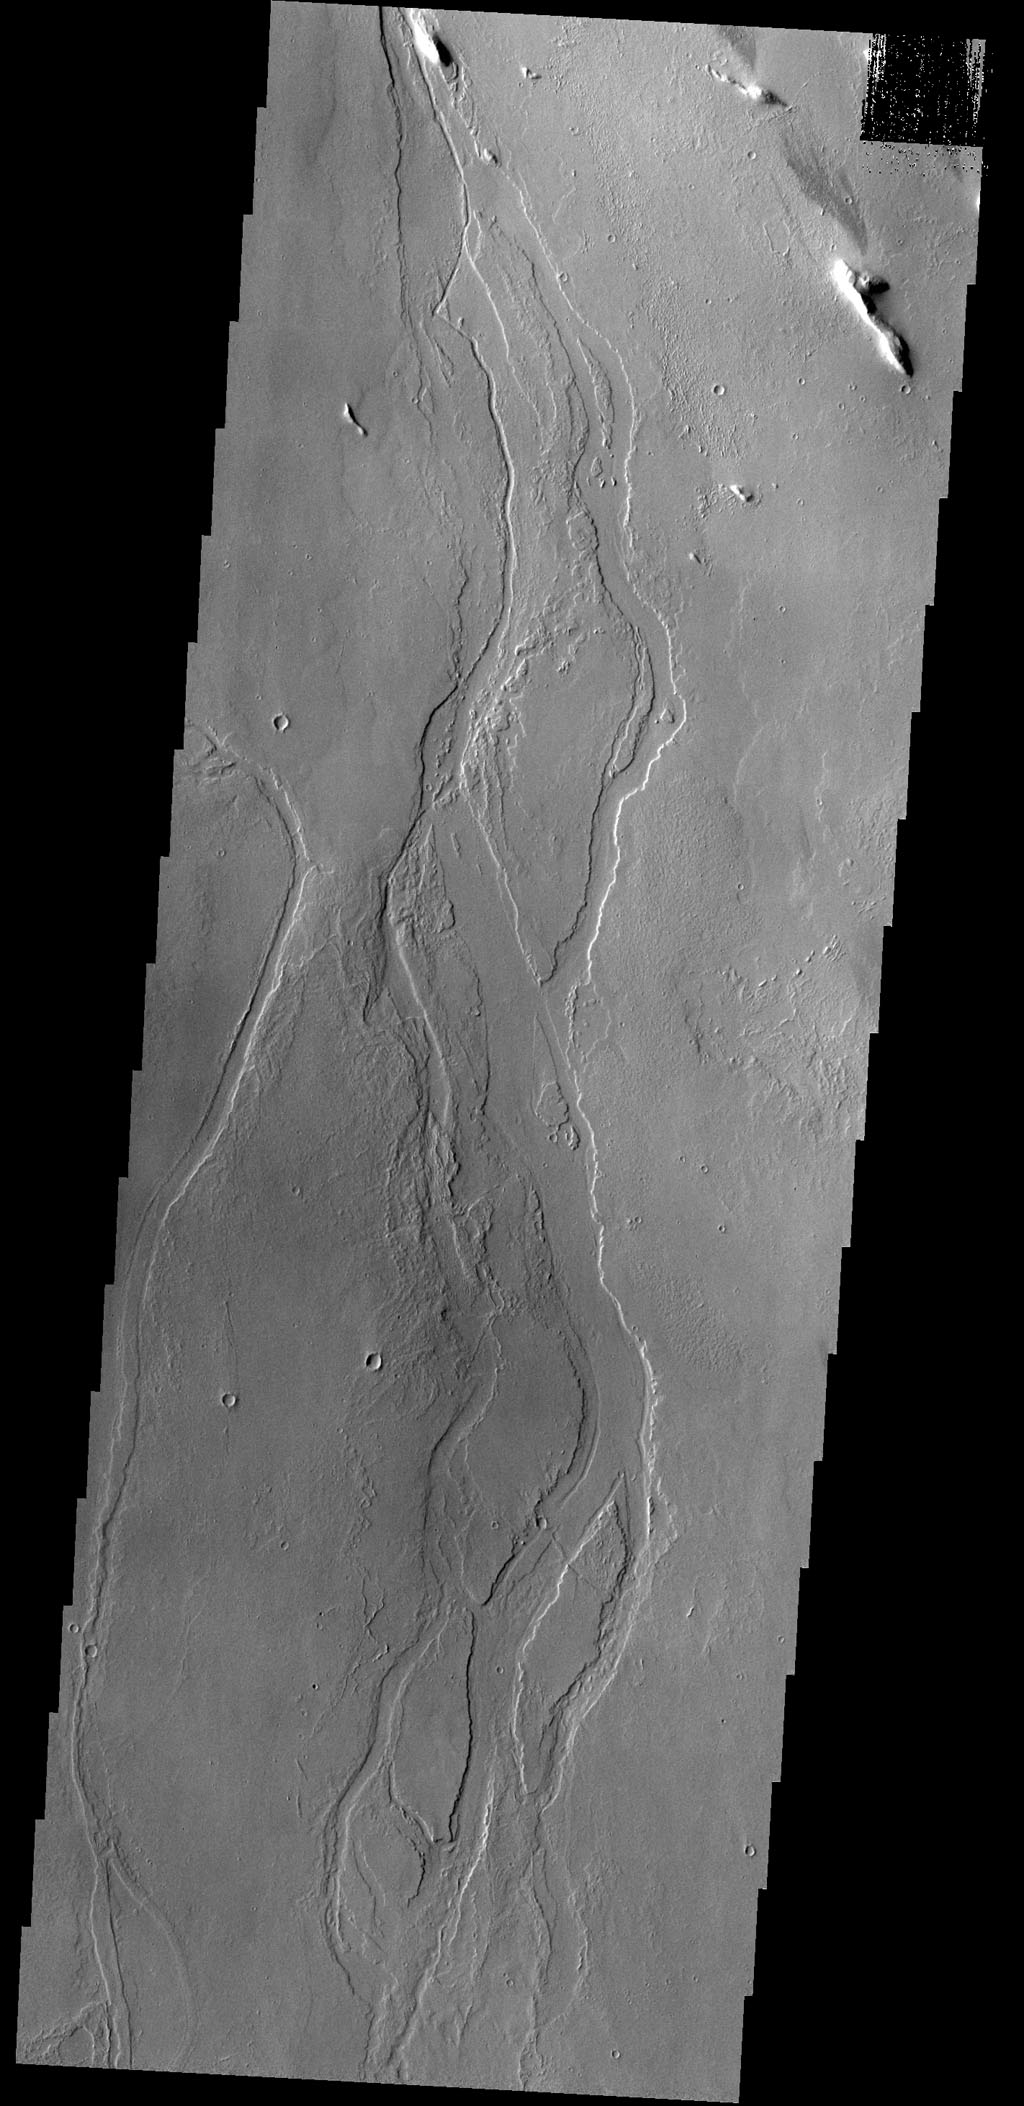 Given their location in the Tharsis volcanic complex, these channels were likely formed by the flow of lava rather than water in this image taken by NASA's 2001 Mars Odyssey spacecraft.